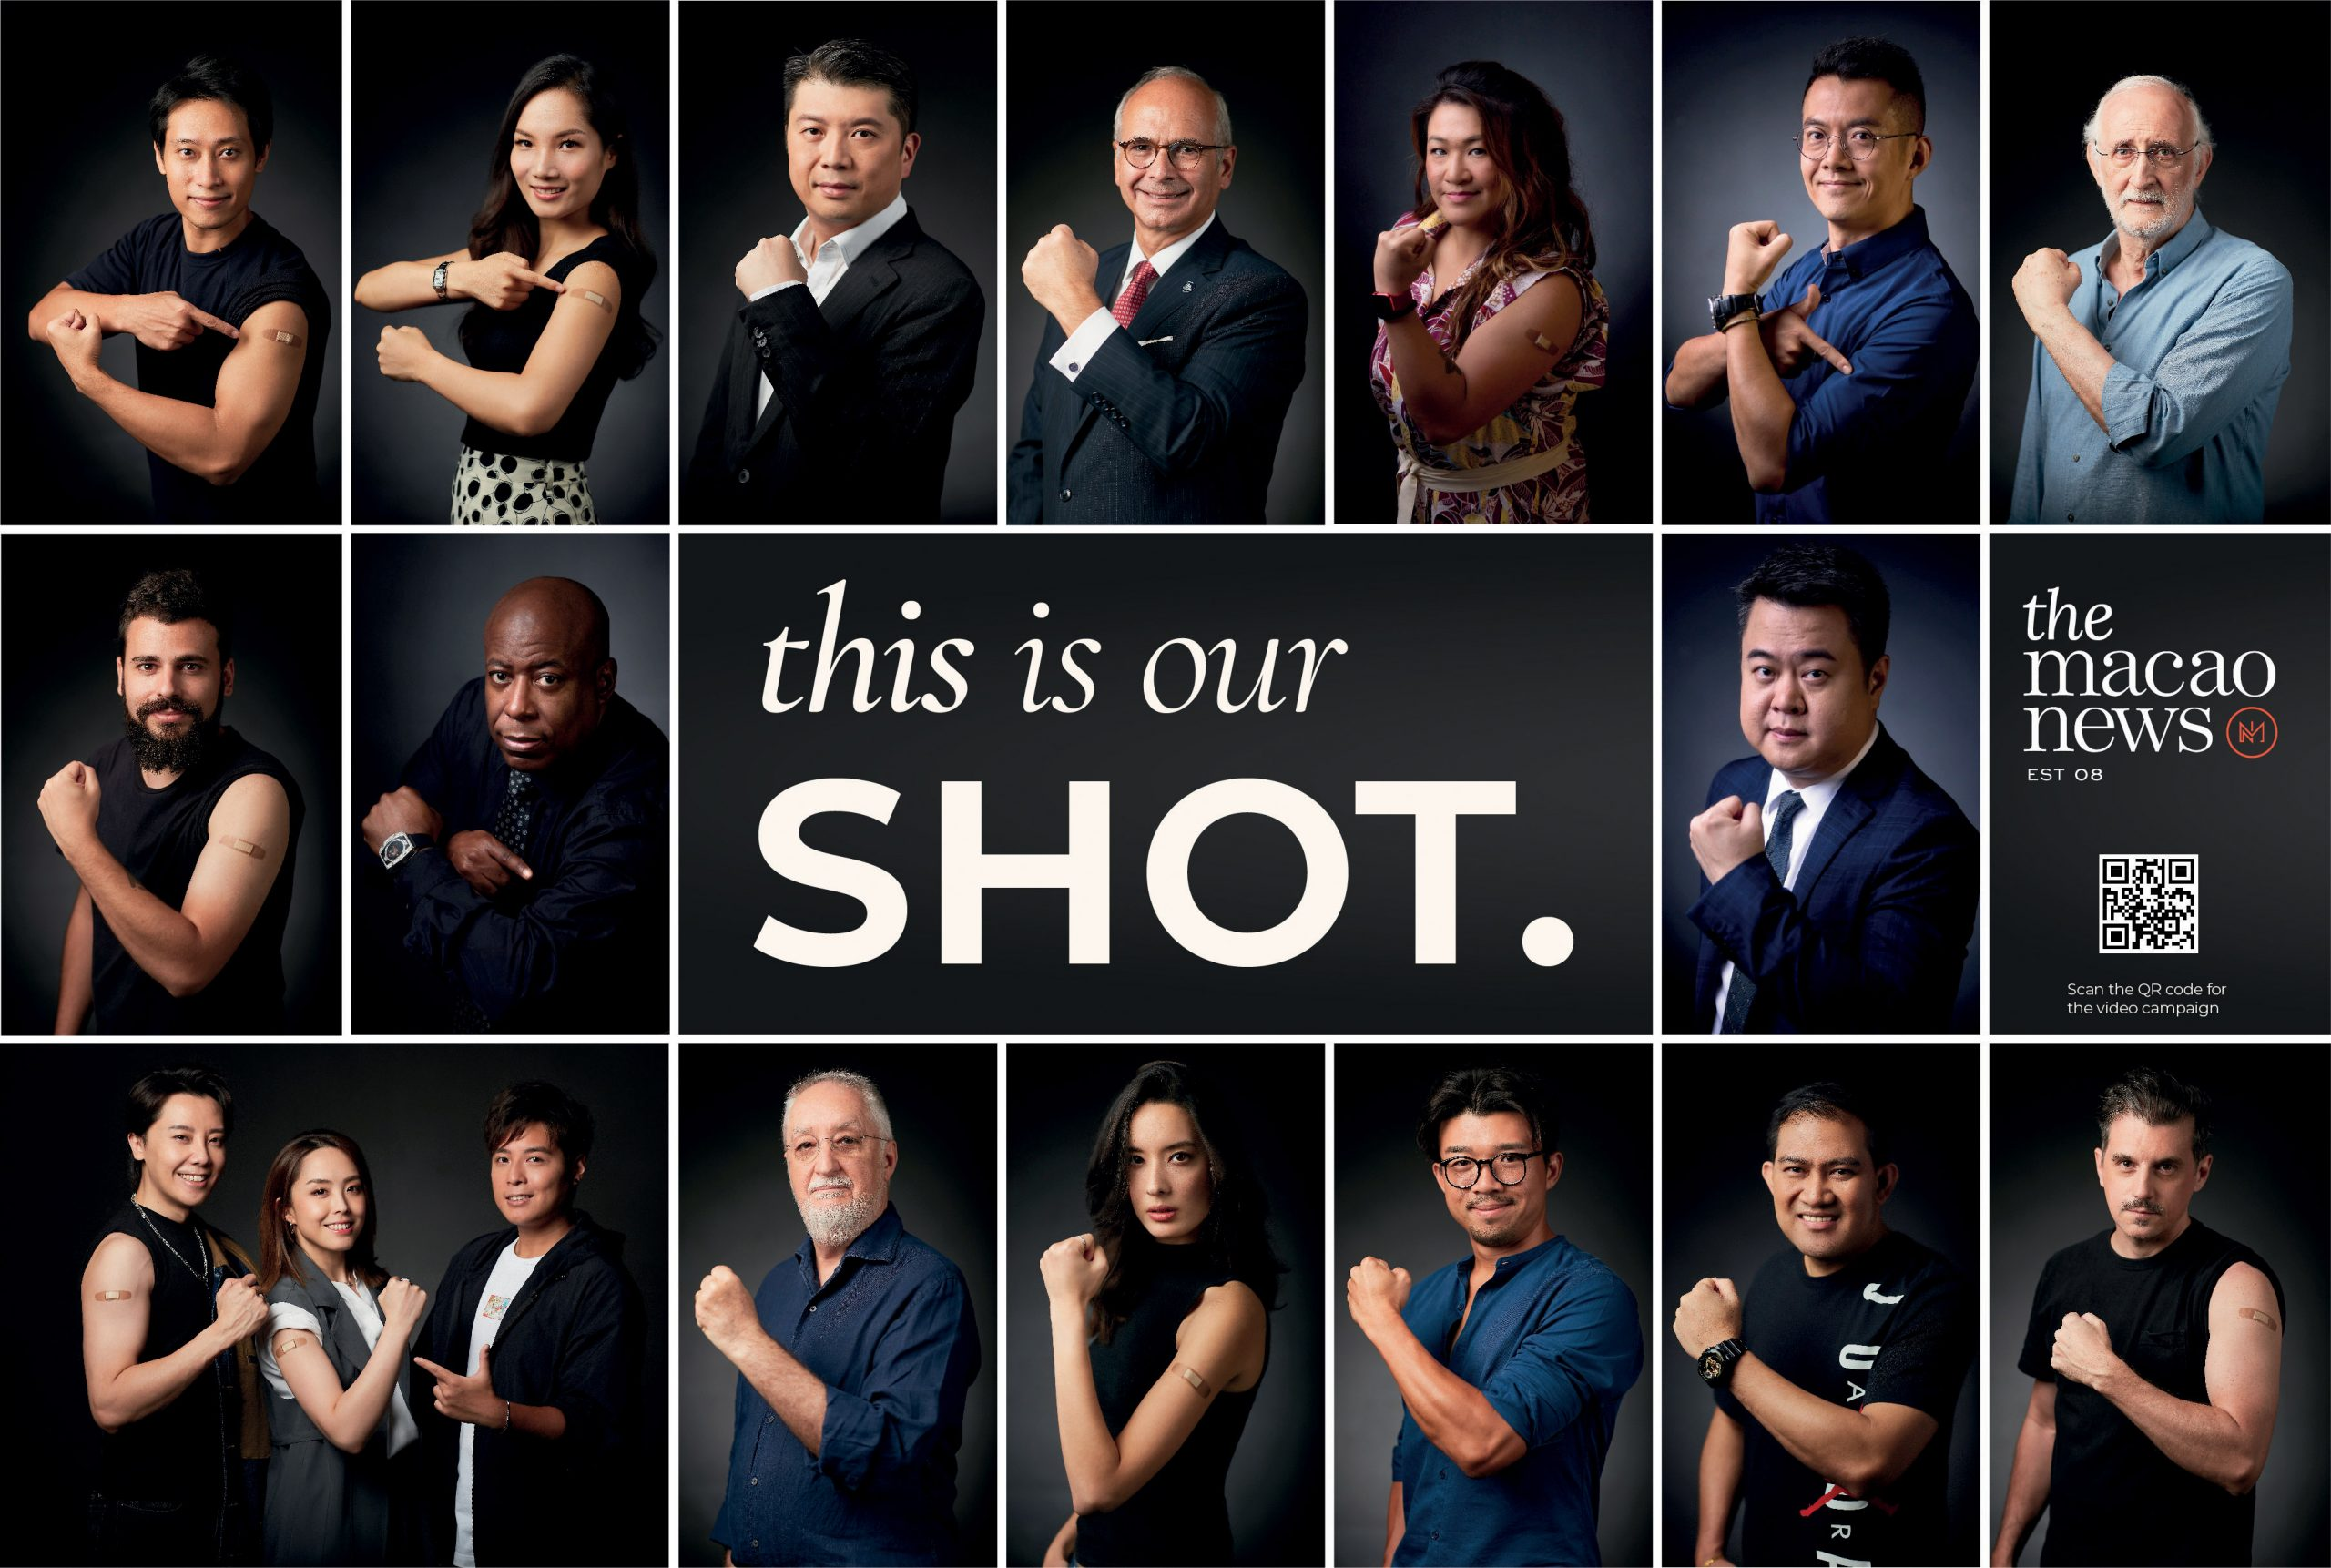 This is our shot